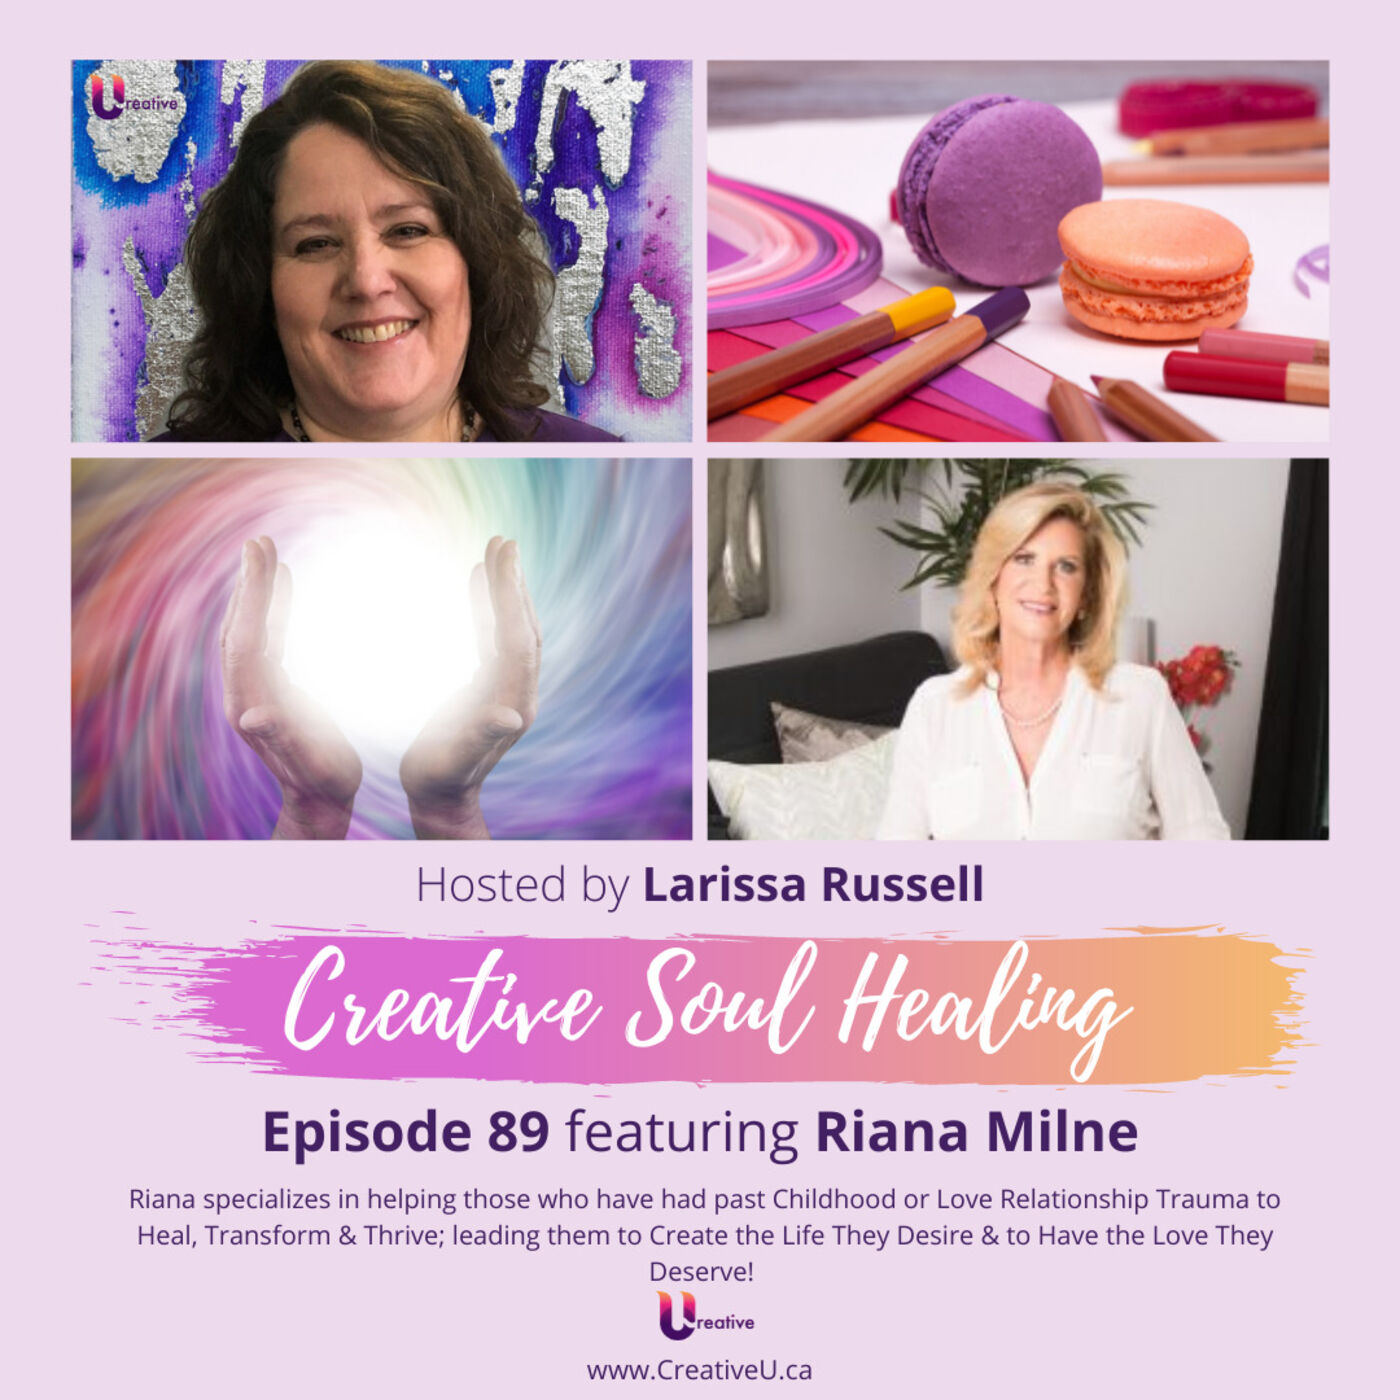 Episode 89 featuring Riana Milne: Ten Childhood Traumas that Affect us as Adults